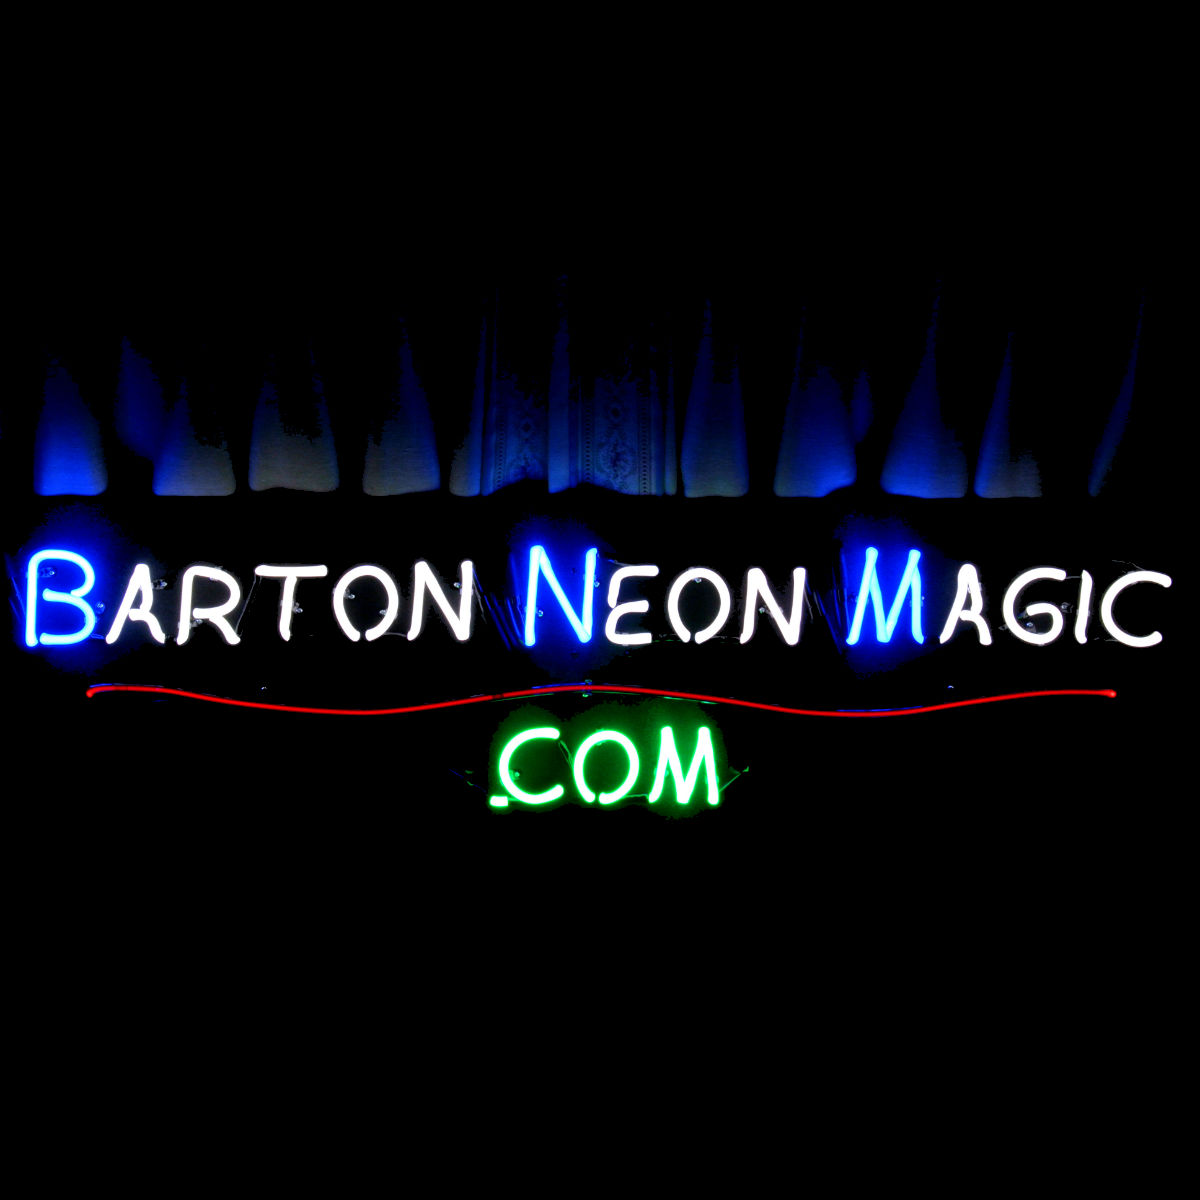 Brilliant Custom Neon Lighting by John Barton - Famous USA Neon Glass Artist - BartonNeonMagic.com